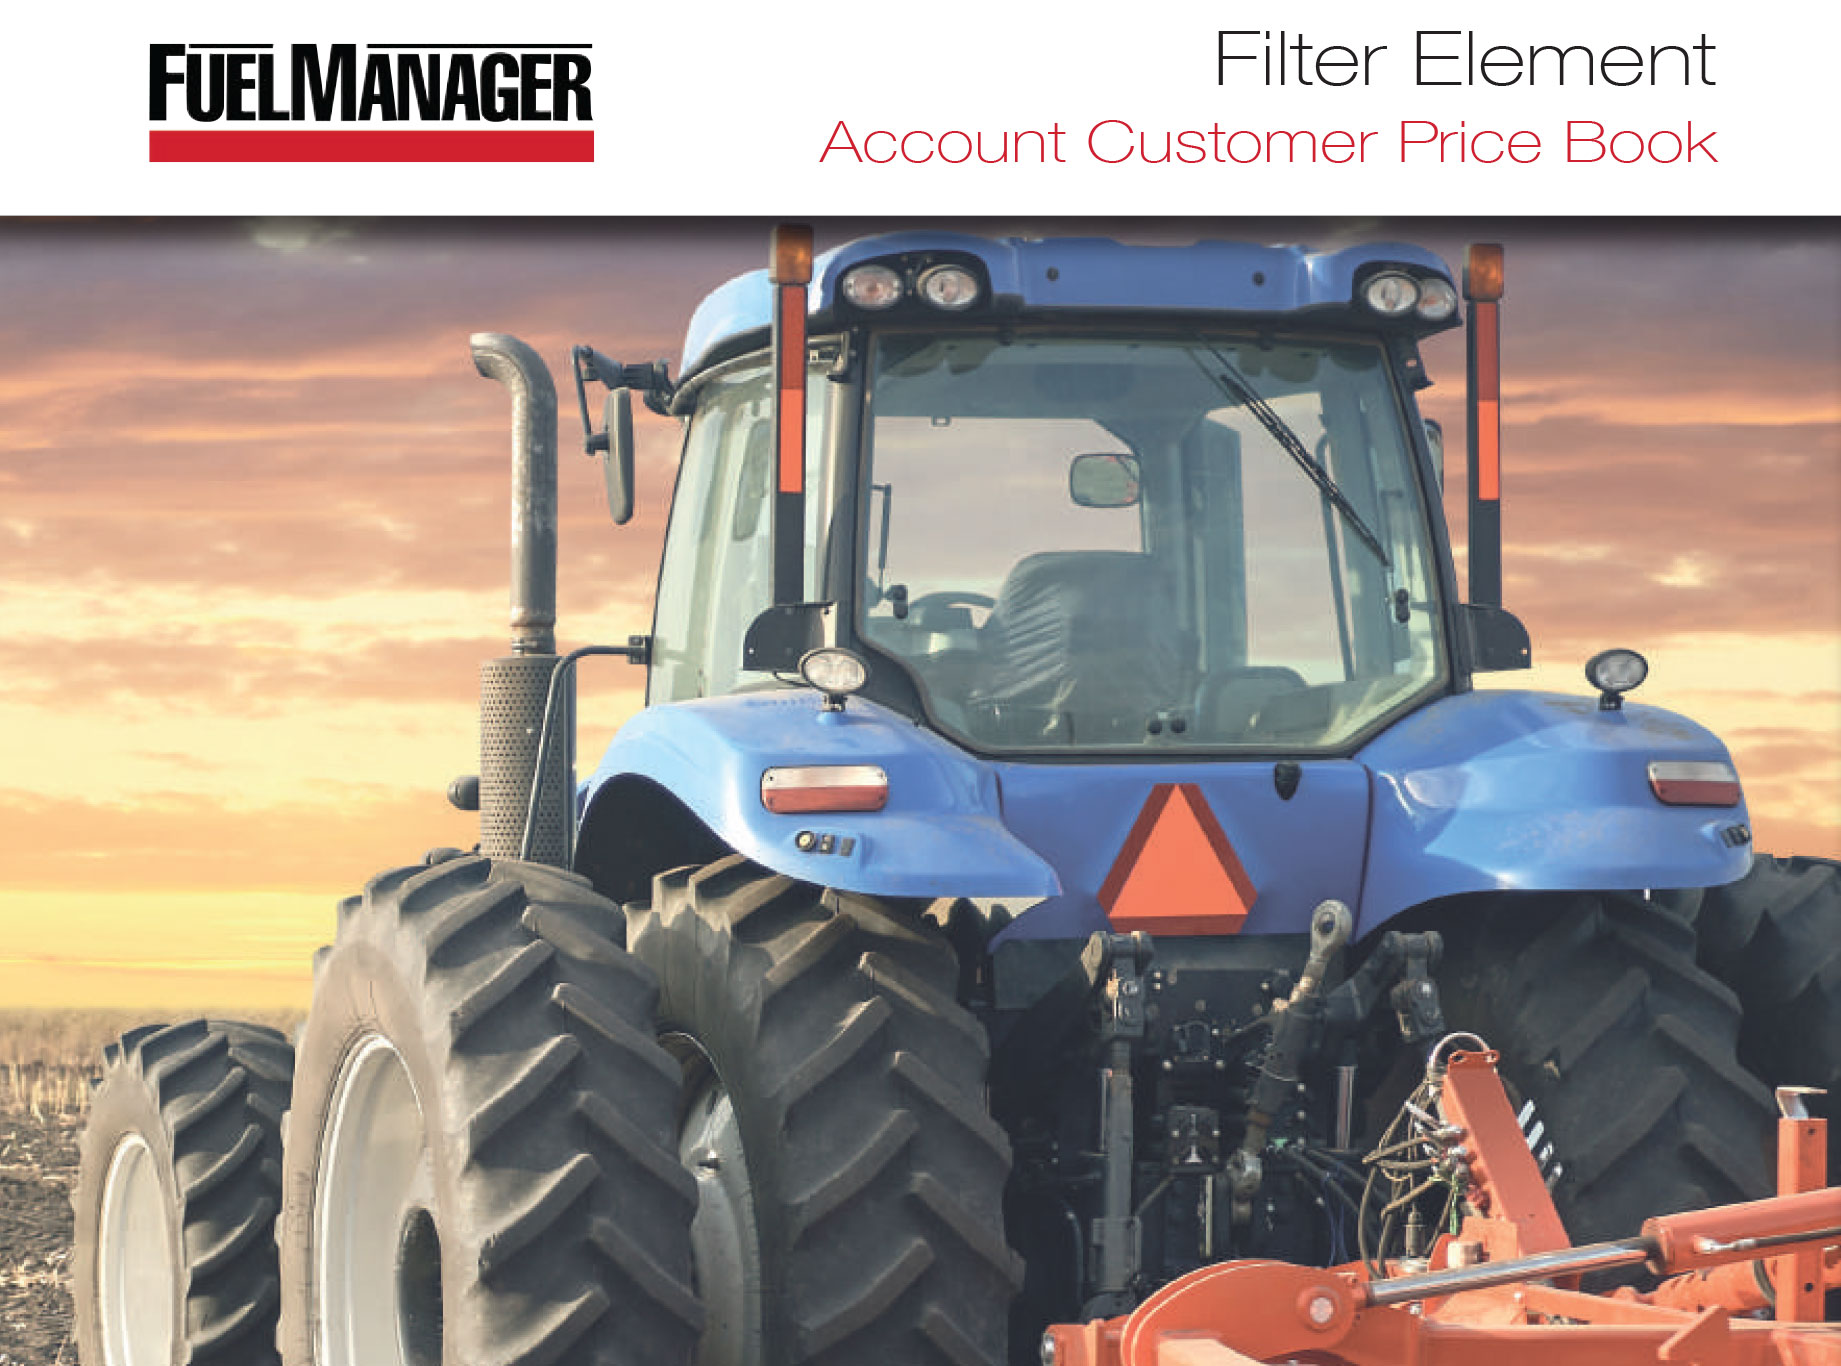 https://www.thomasgroupltd.co.uk/wp-content/uploads/2019/06/Fuel-Manager-Filter-Elements-Customer-price-book-illustration-compressed-1.jpg